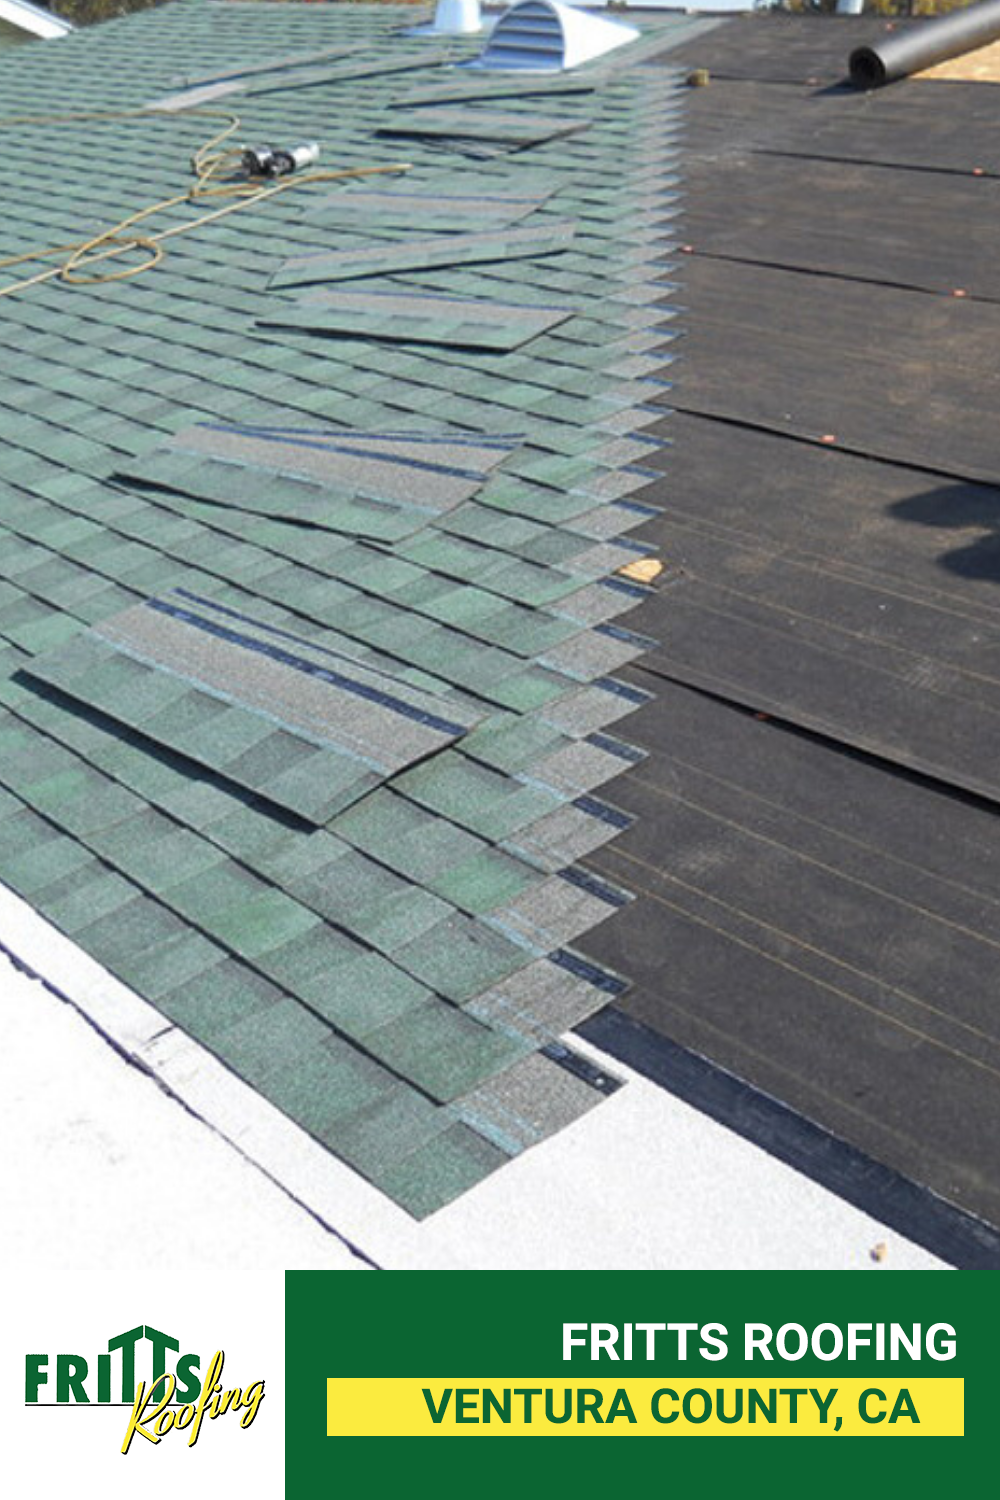 Whether You Need A Whole Roof Replacement Re Roof Roof Repairs Or Any Other Roof Related Services Fritts Roofing And In 2020 Roofing Roof Repair Roofing Estimate